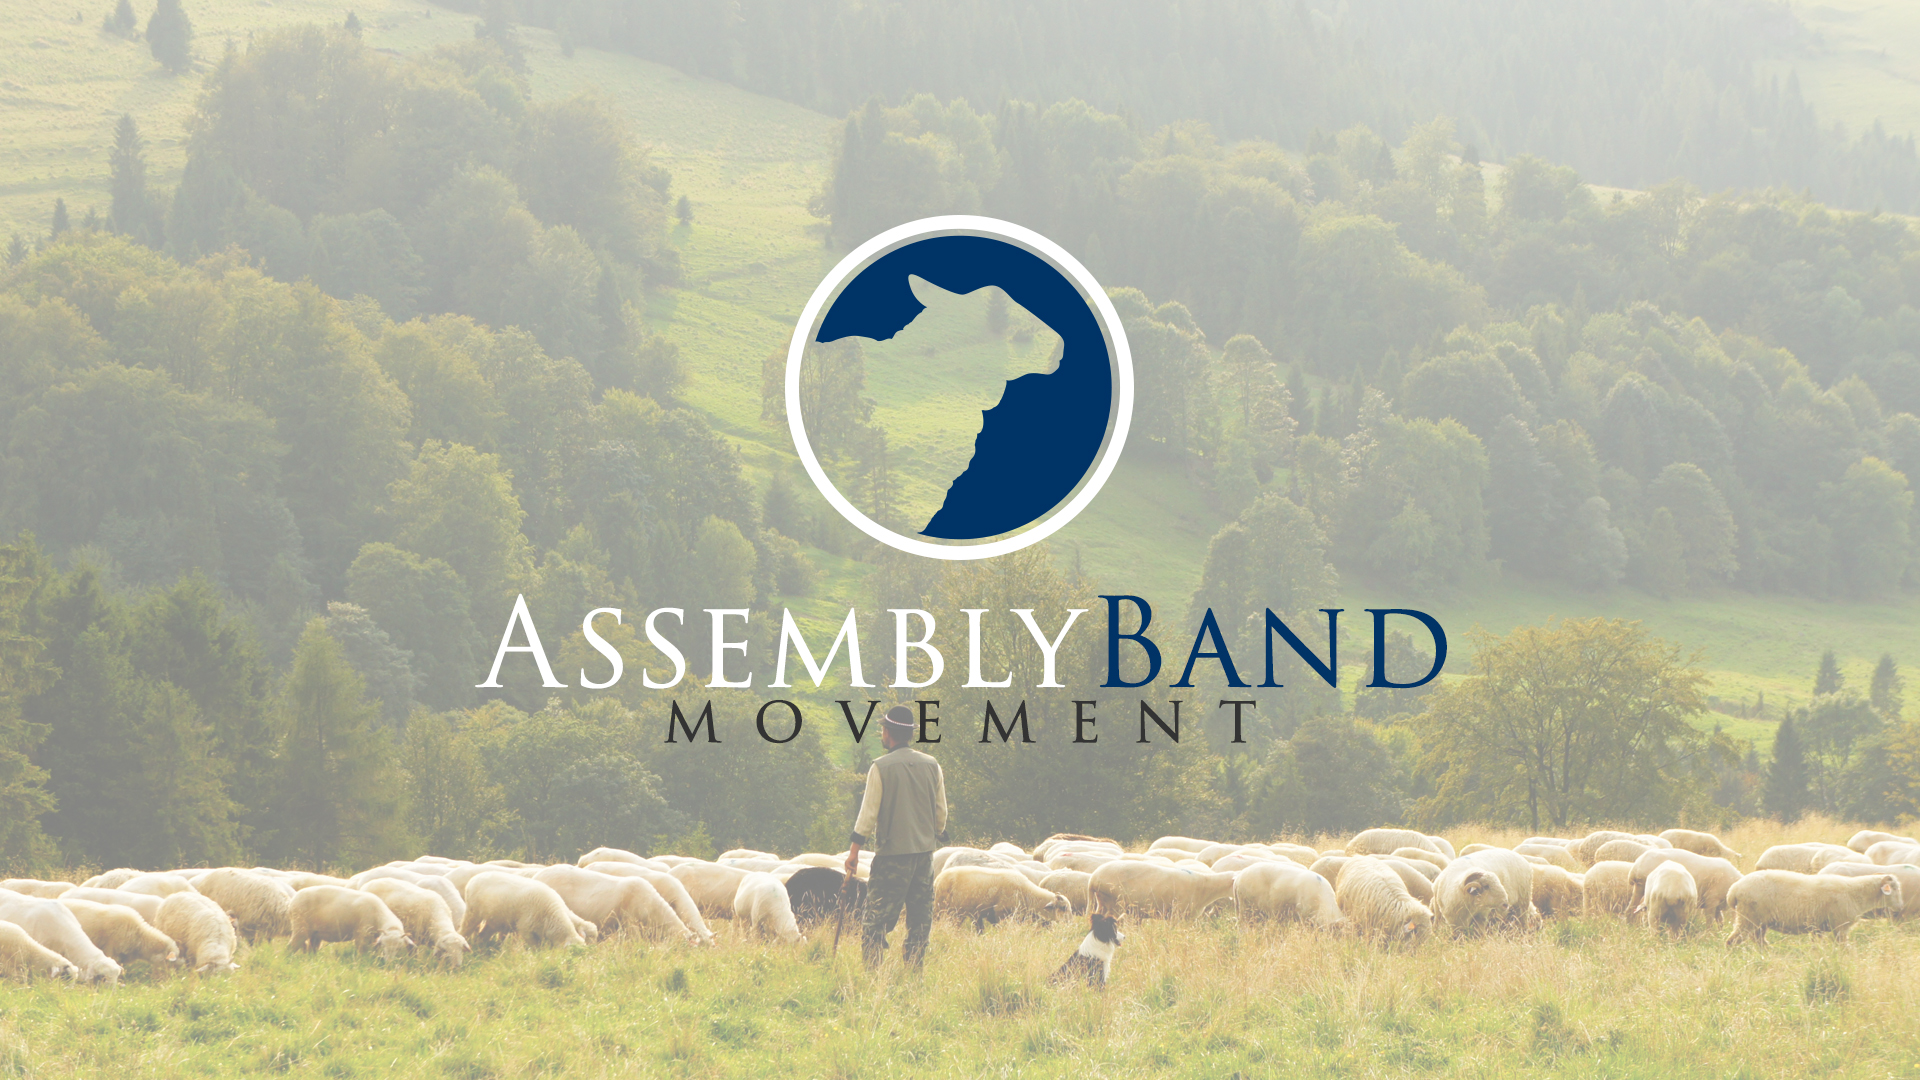 Assembly Band Movement